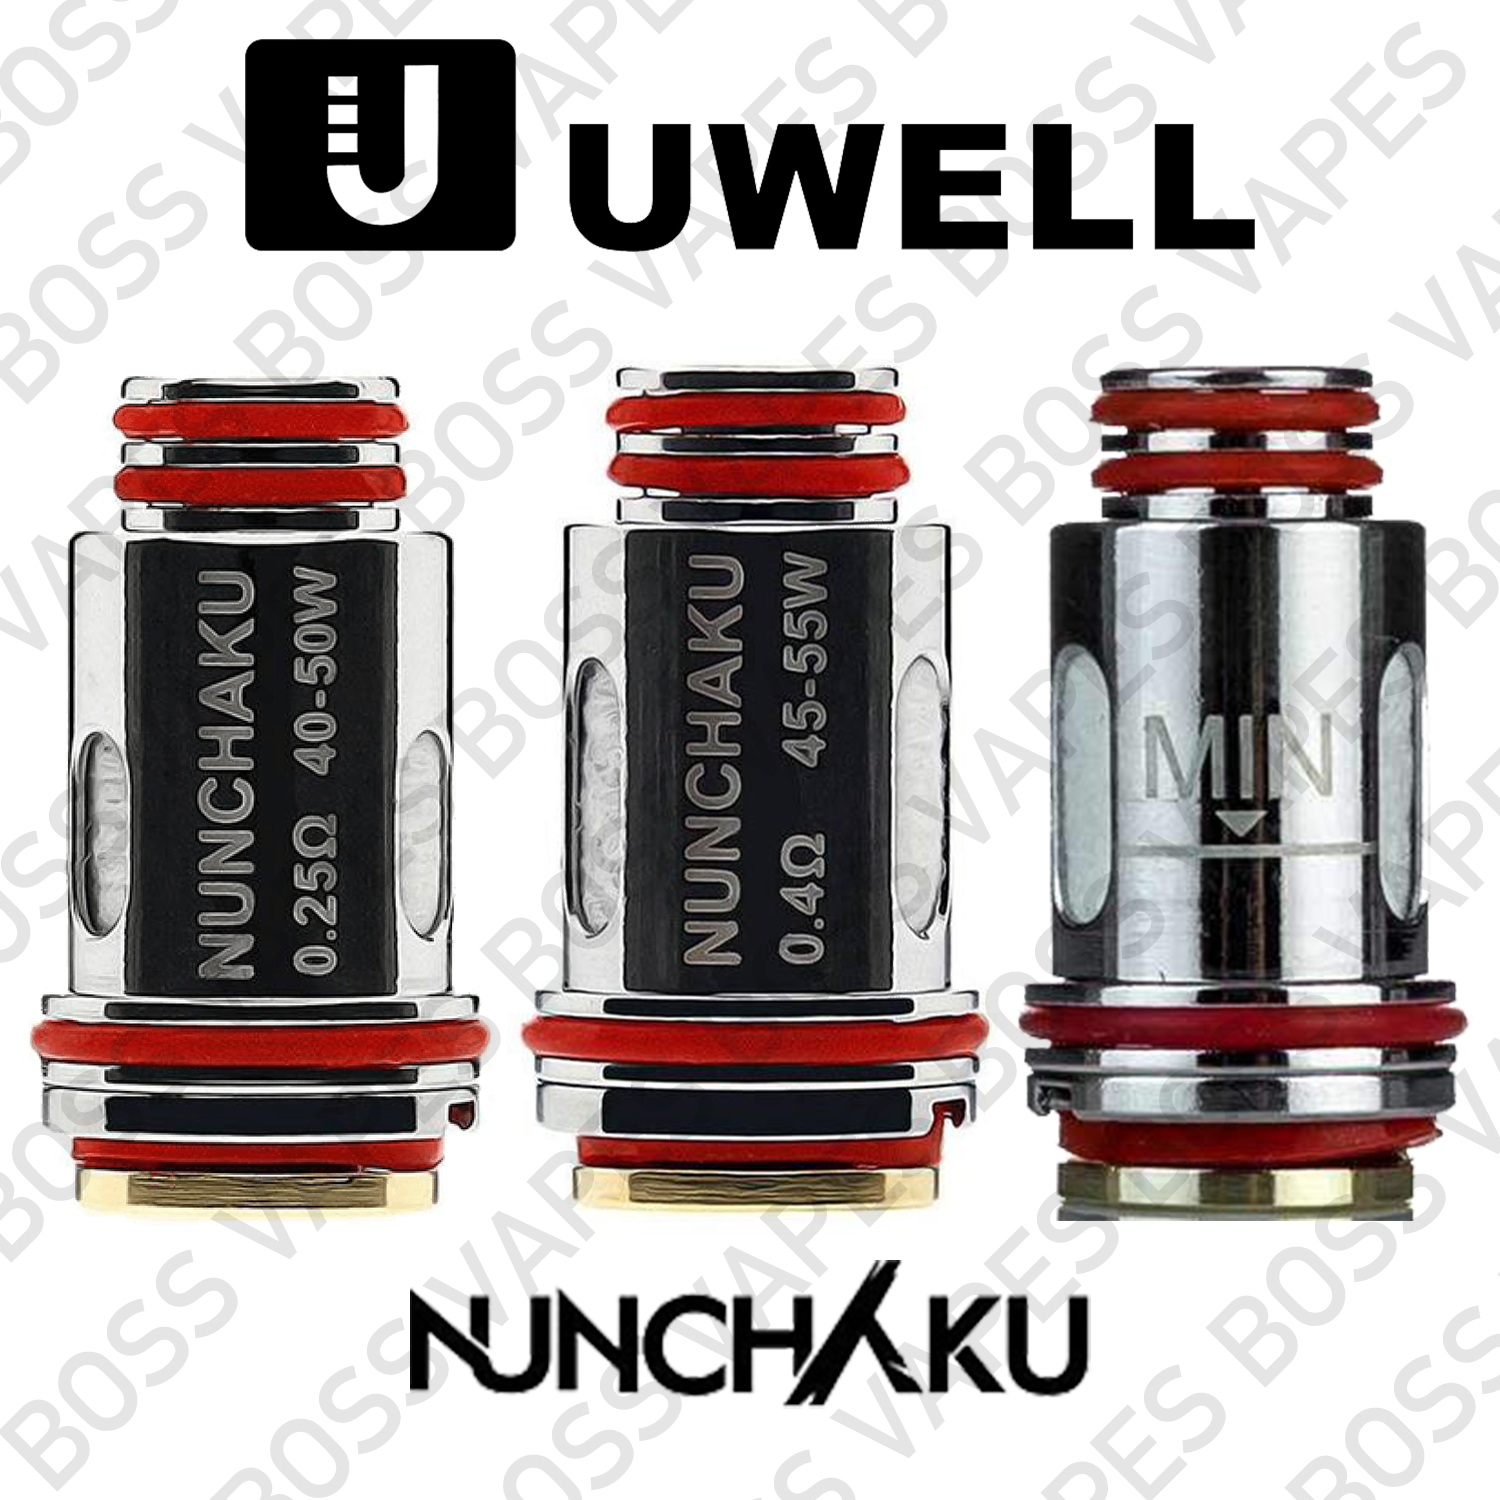 UWELL NUNCHAKU COILS (Price Per Coil)